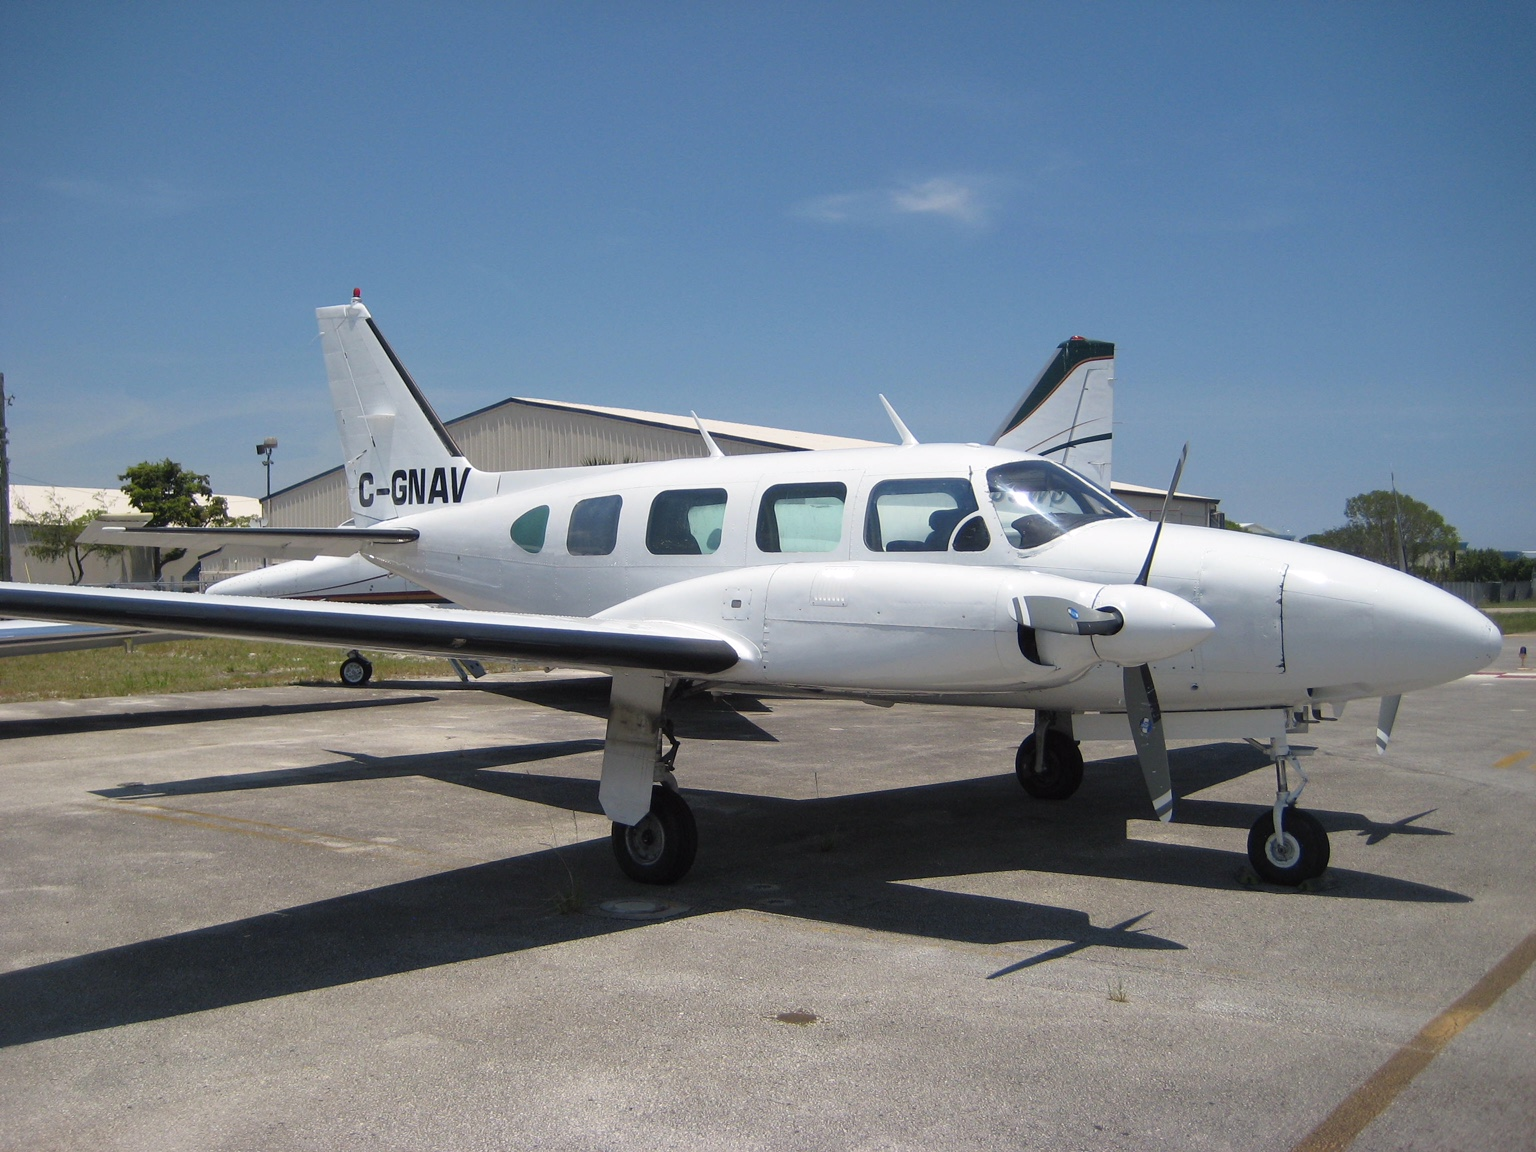 U.S. Treasury Aircraft & Vessel Online Auction (Jan. 24-31)